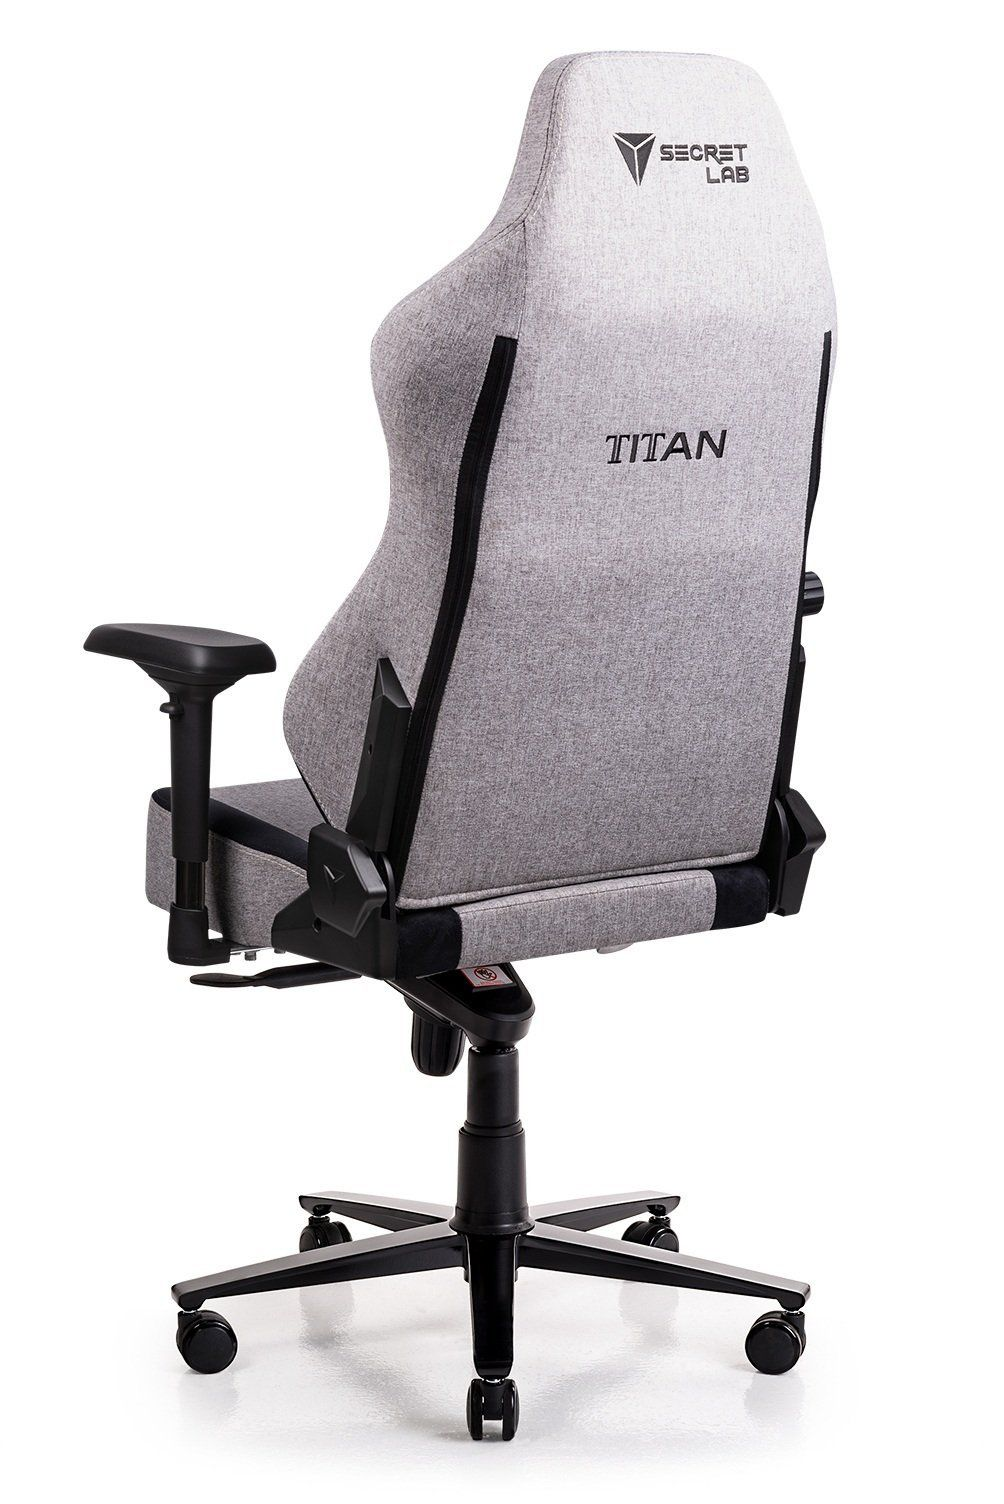 TITAN Series Secretlab US Large chair, Chair design